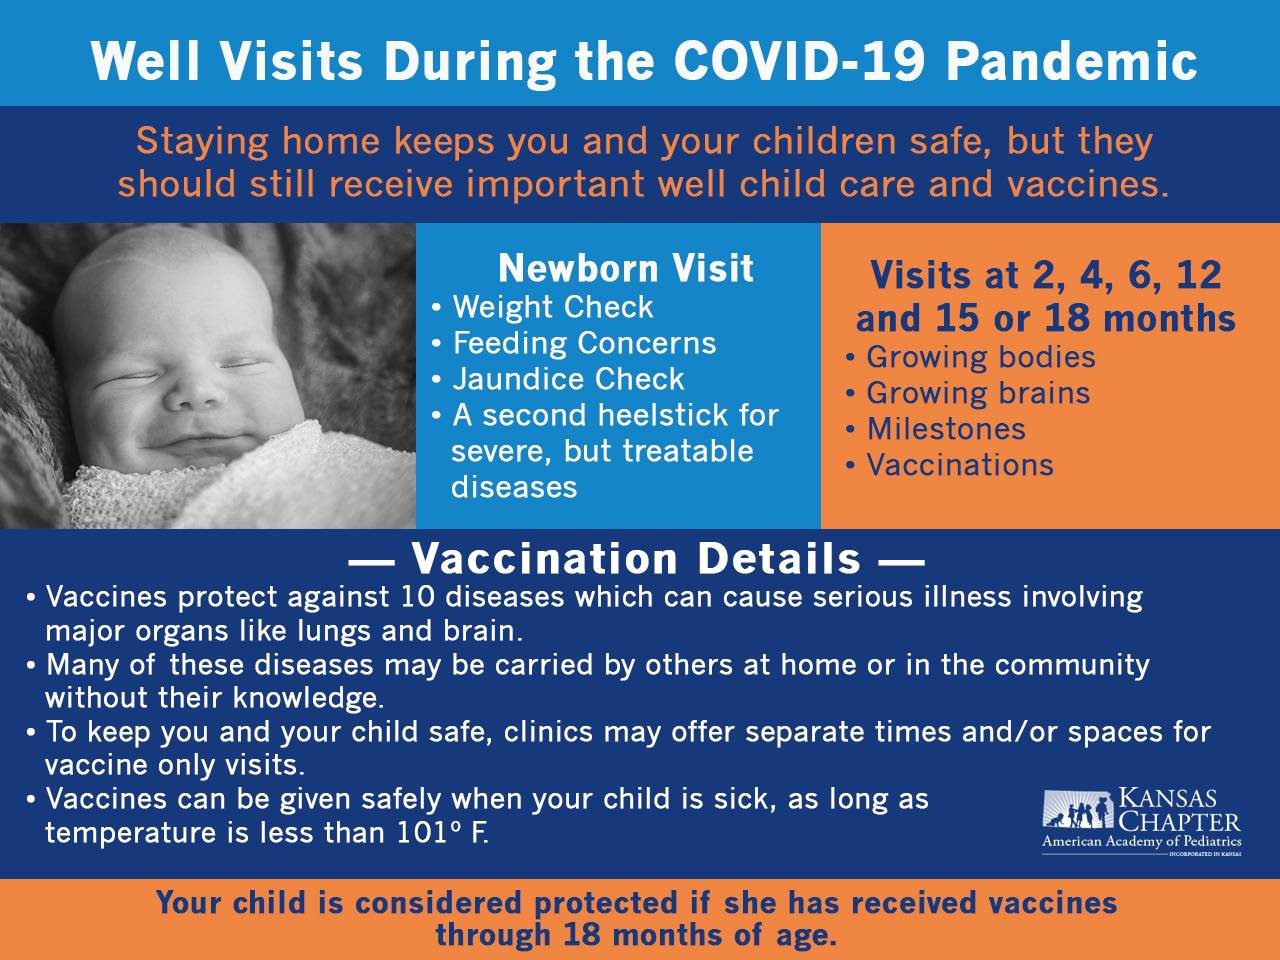 Kansas AAP Infographic for Well-visits during the Covid-19 pandemic